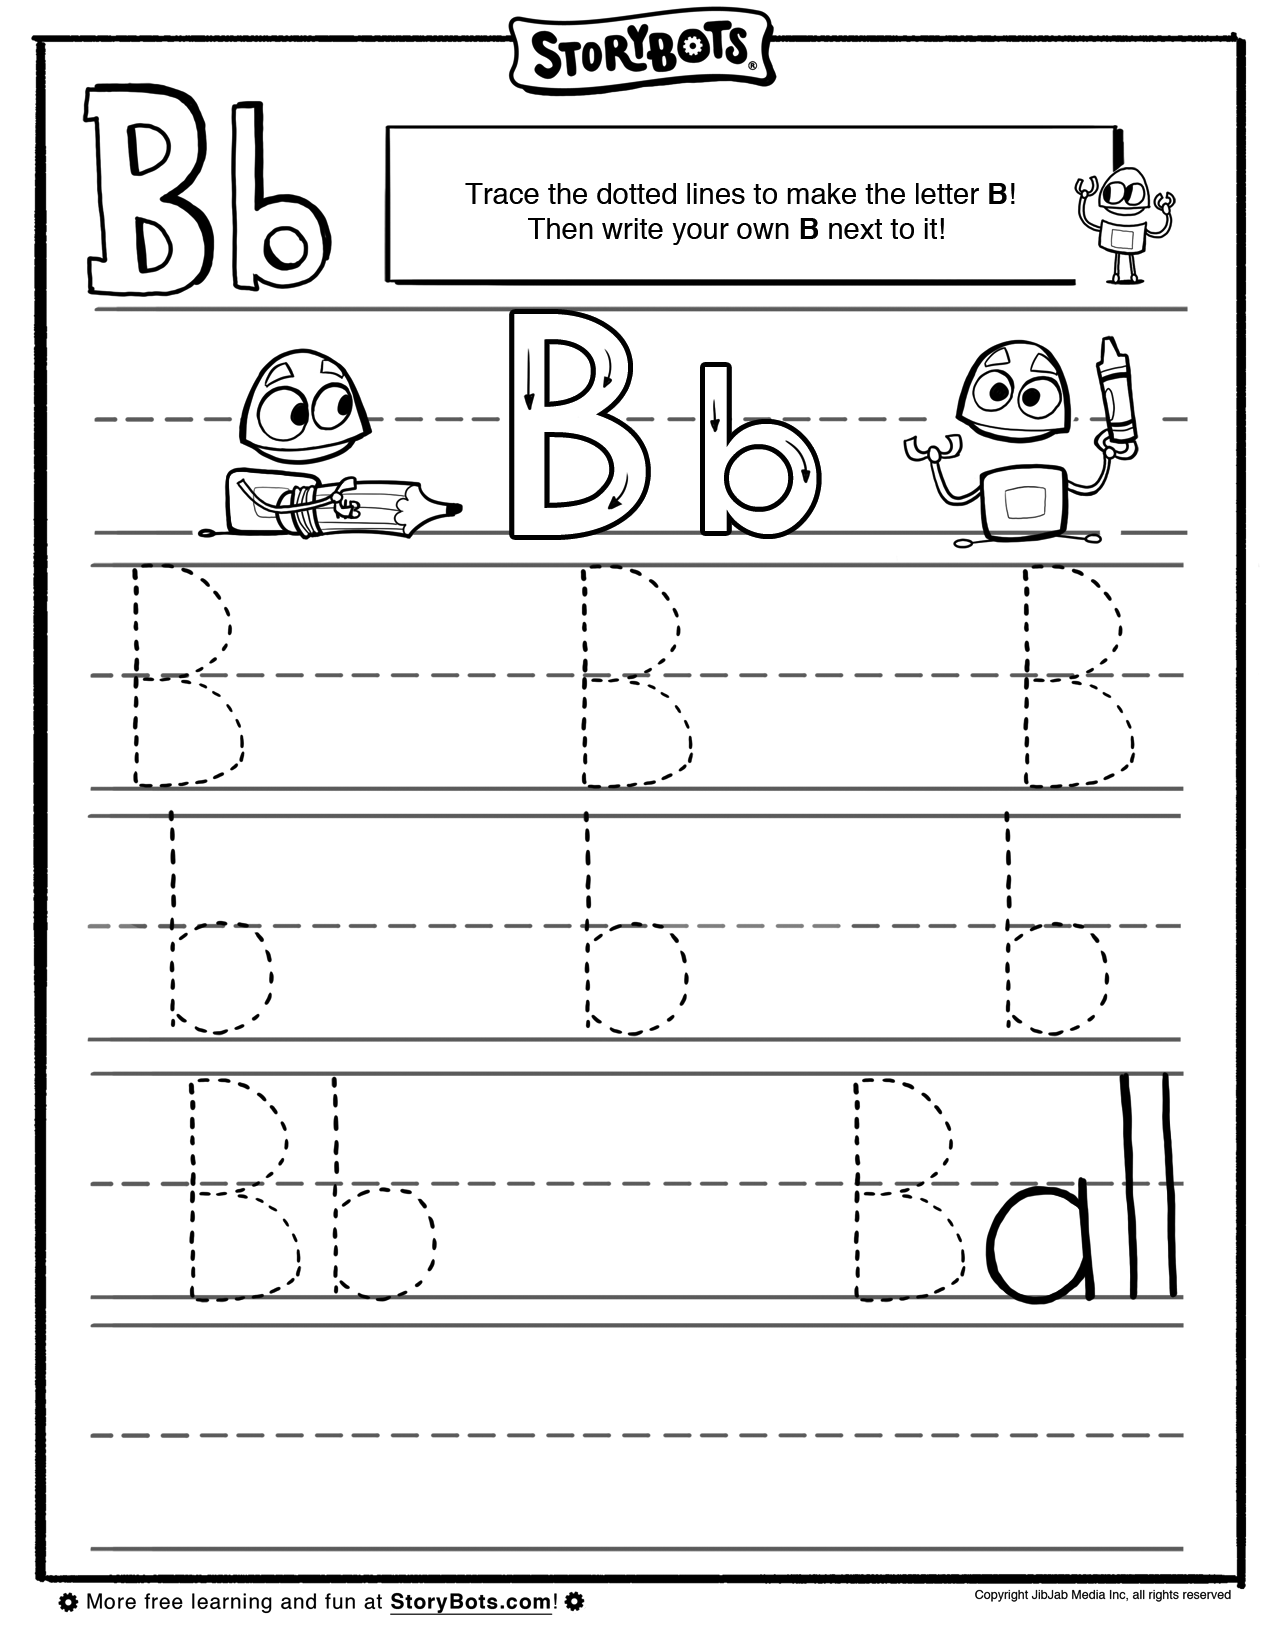 letter b tracing sheet abc activity sheets storybots preschool time pinterest abc. Black Bedroom Furniture Sets. Home Design Ideas